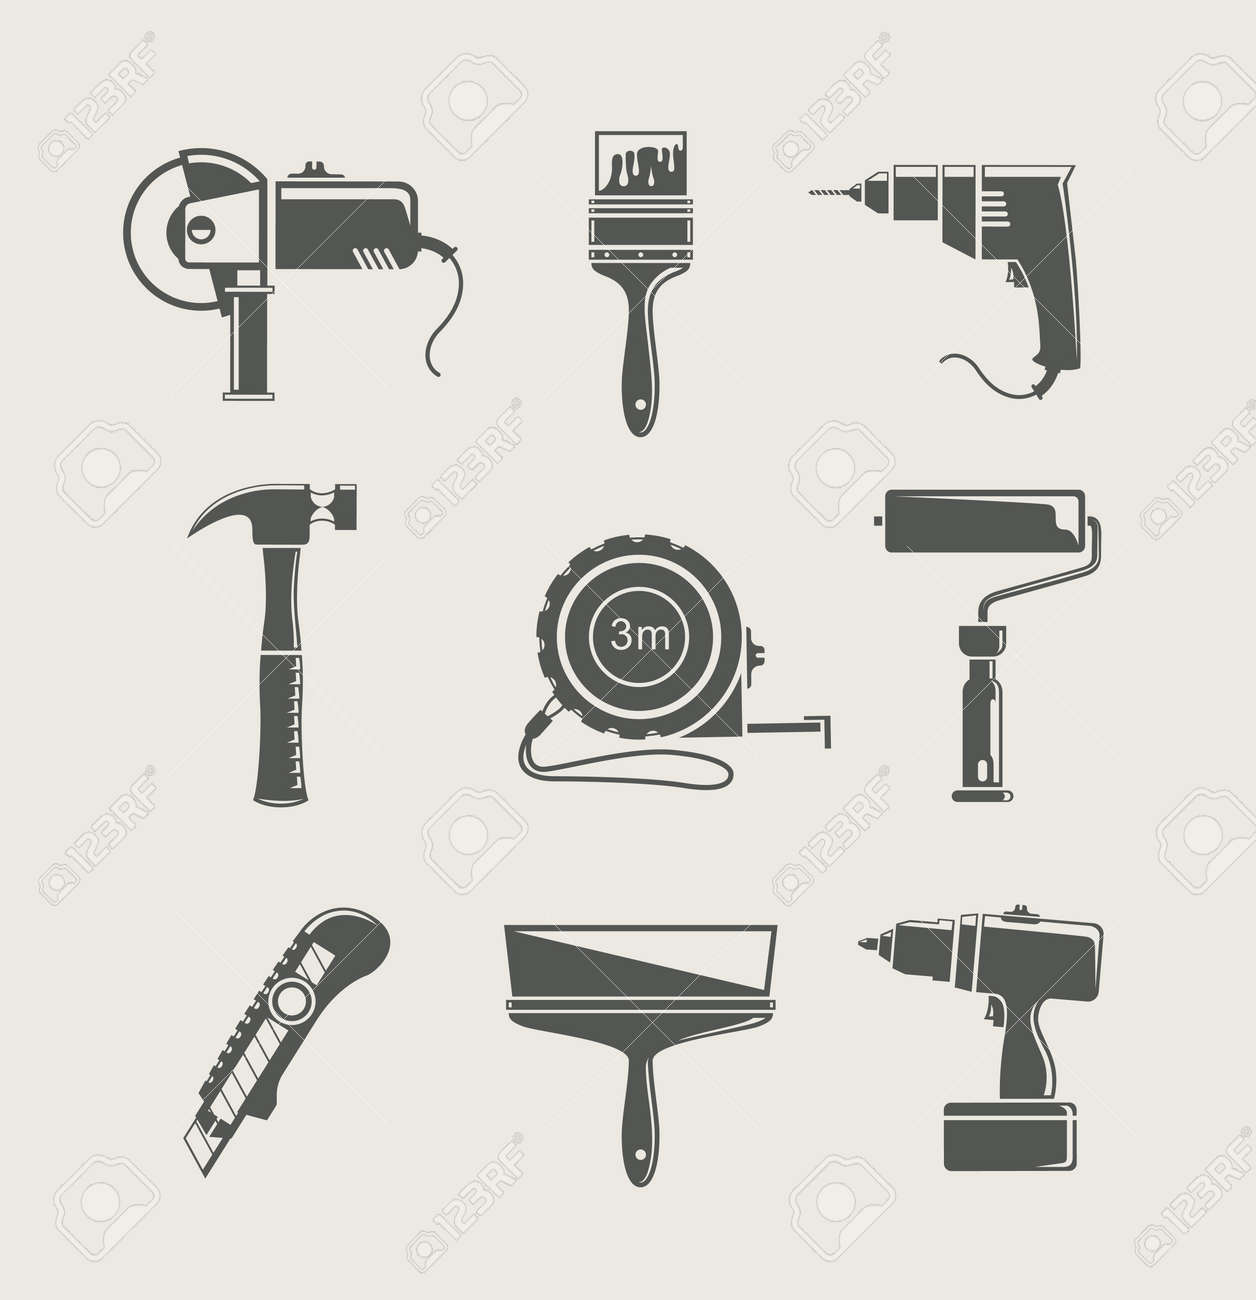 building tool icon  isolated on background Stock Vector - 14017304